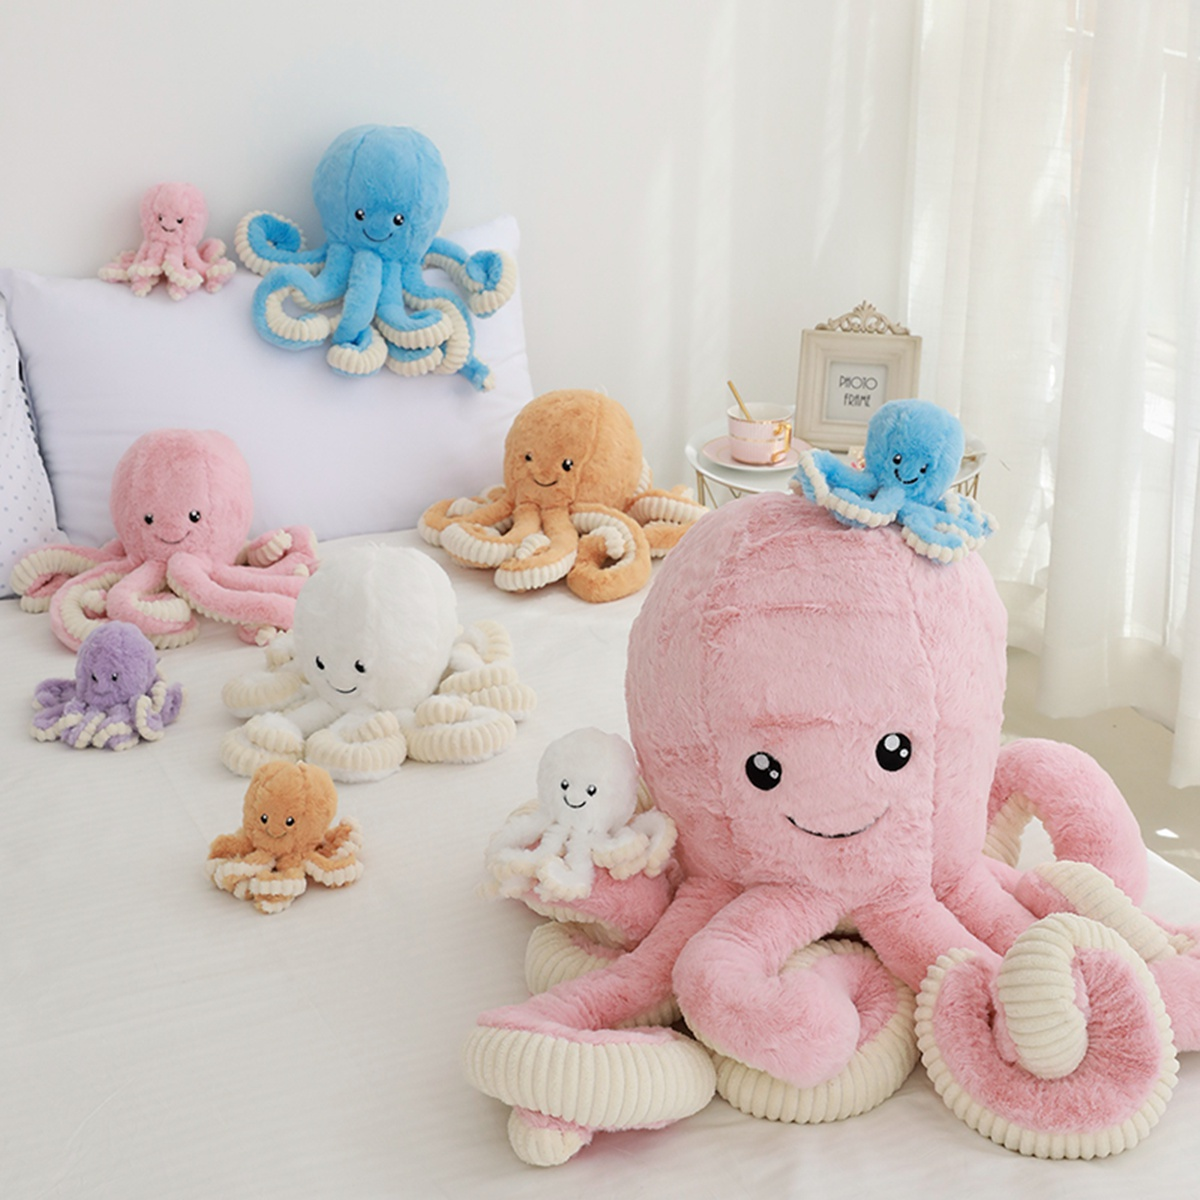 40cm-80cm Lovely Simulation Octopus Pendant Plush Stuffed Toy Soft Animal Home Accessories Cute Animal Doll Children Gifts